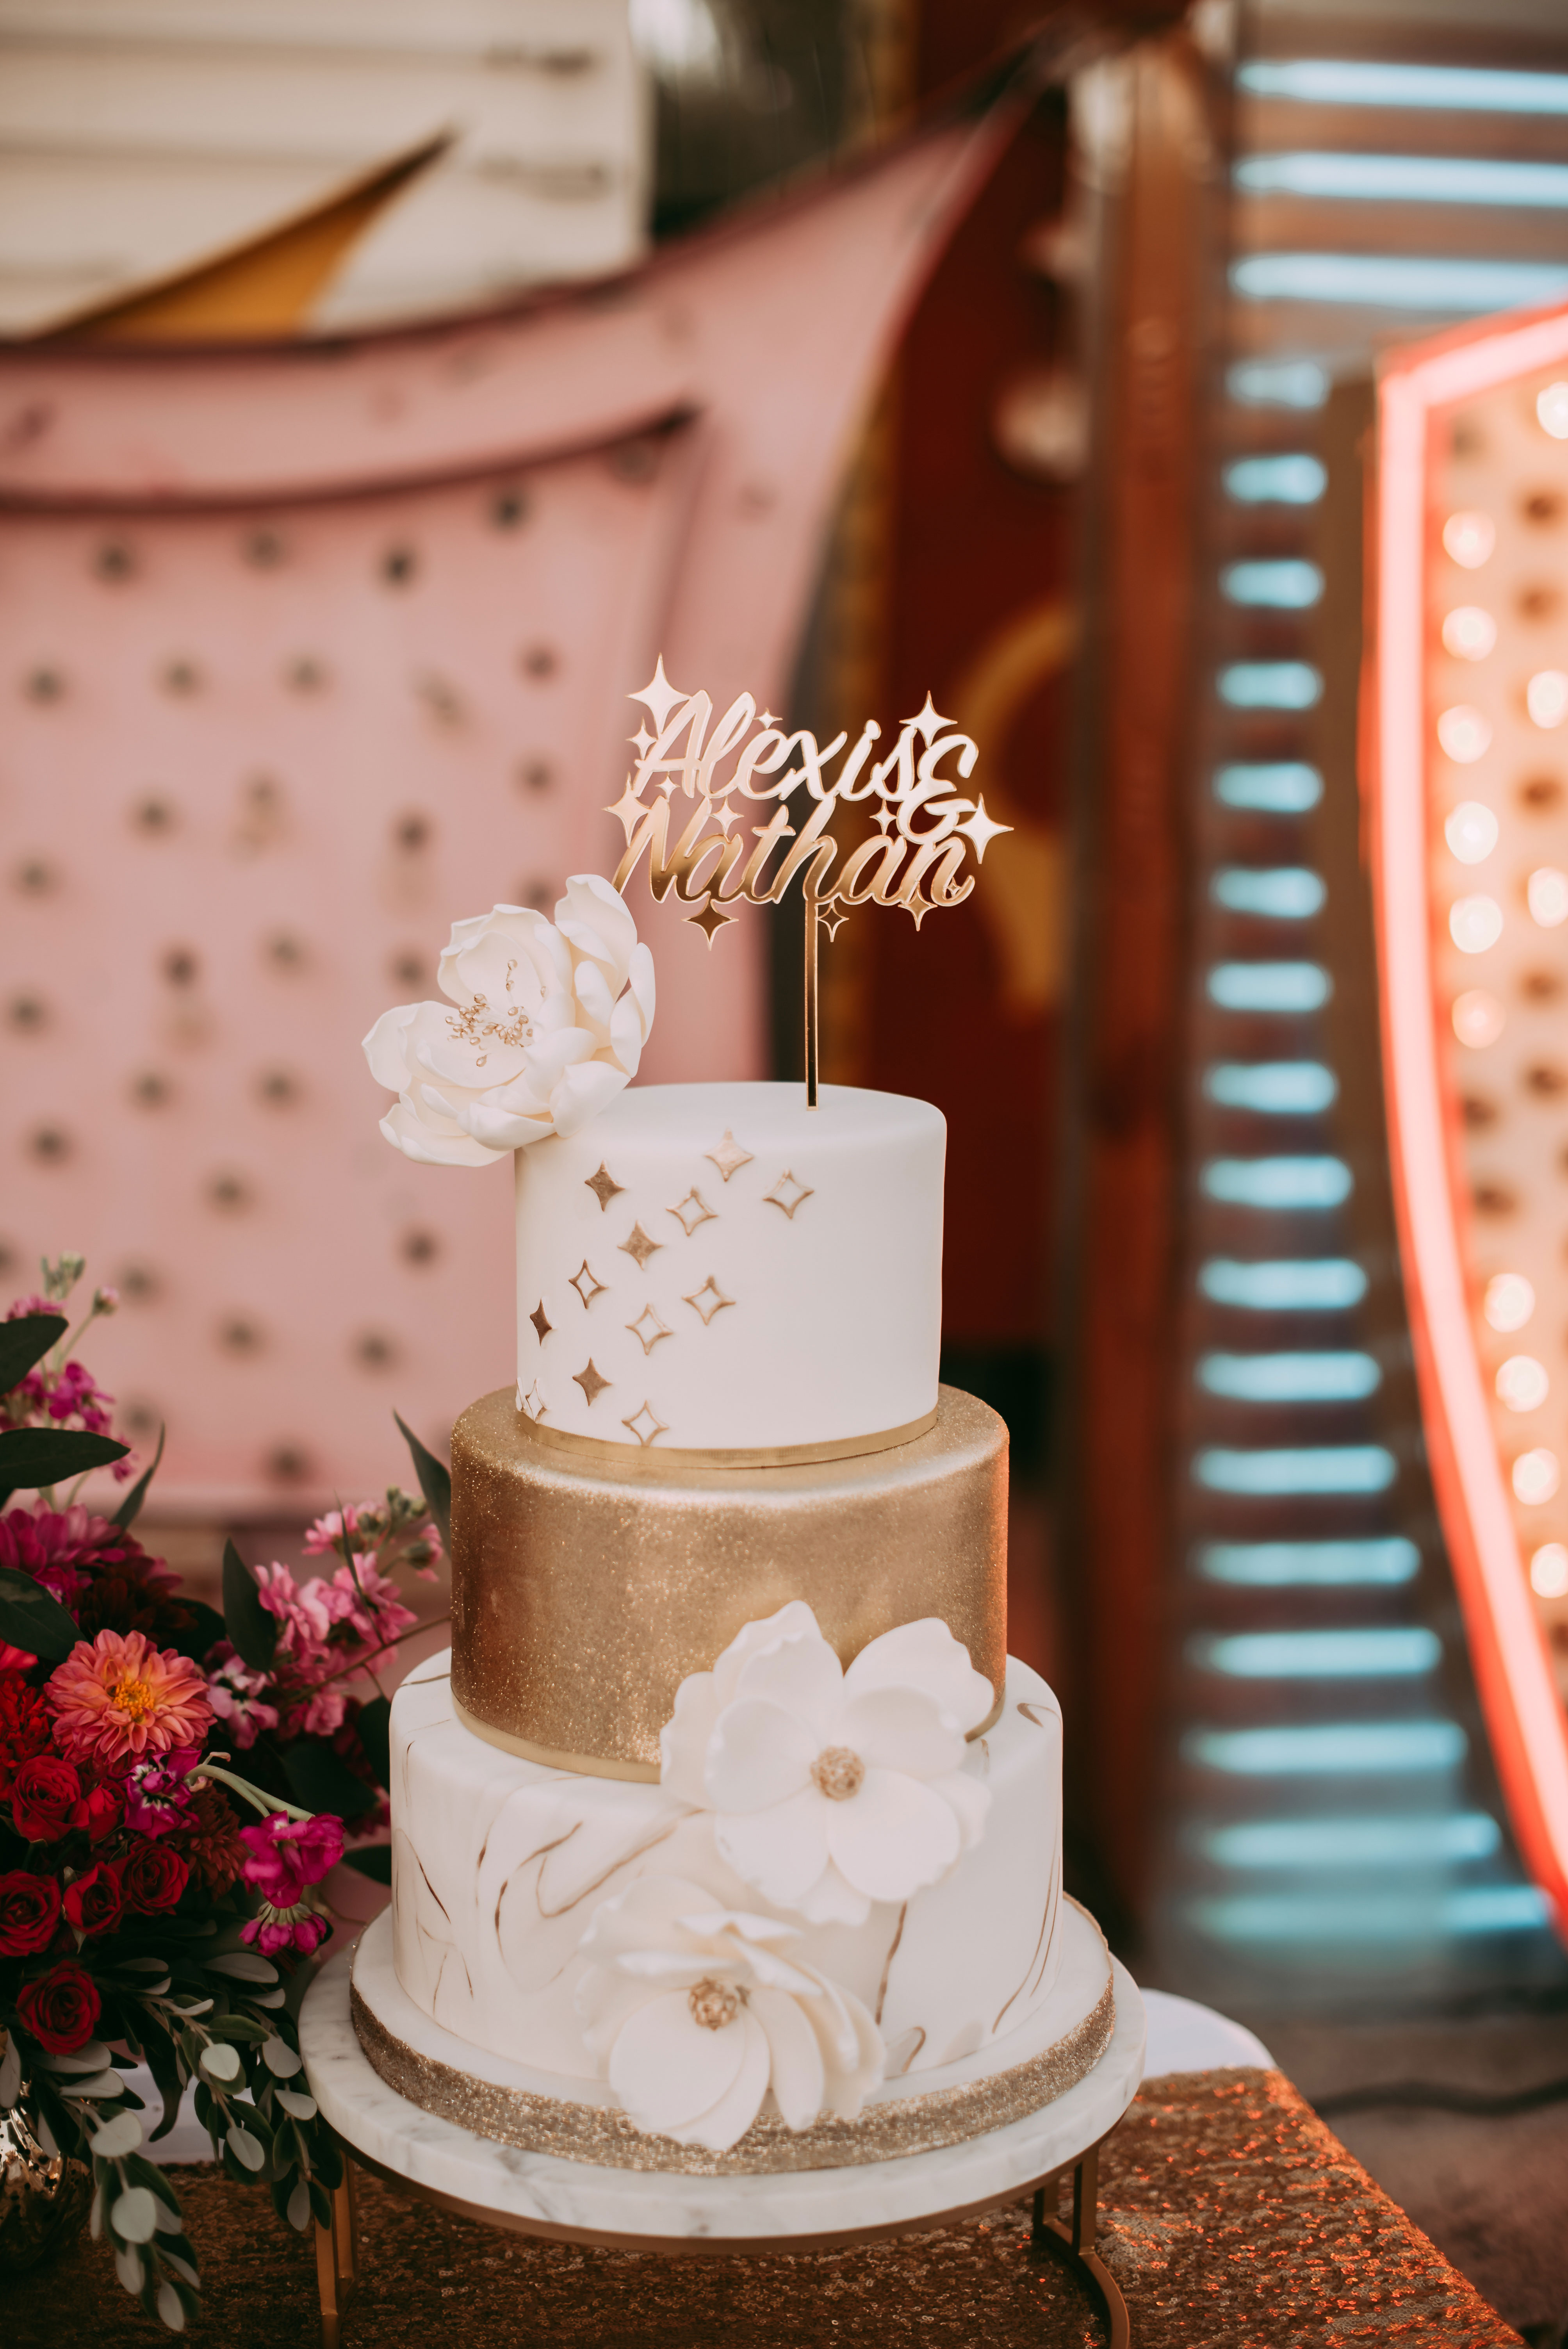 wedding cake toppers jamie y photography